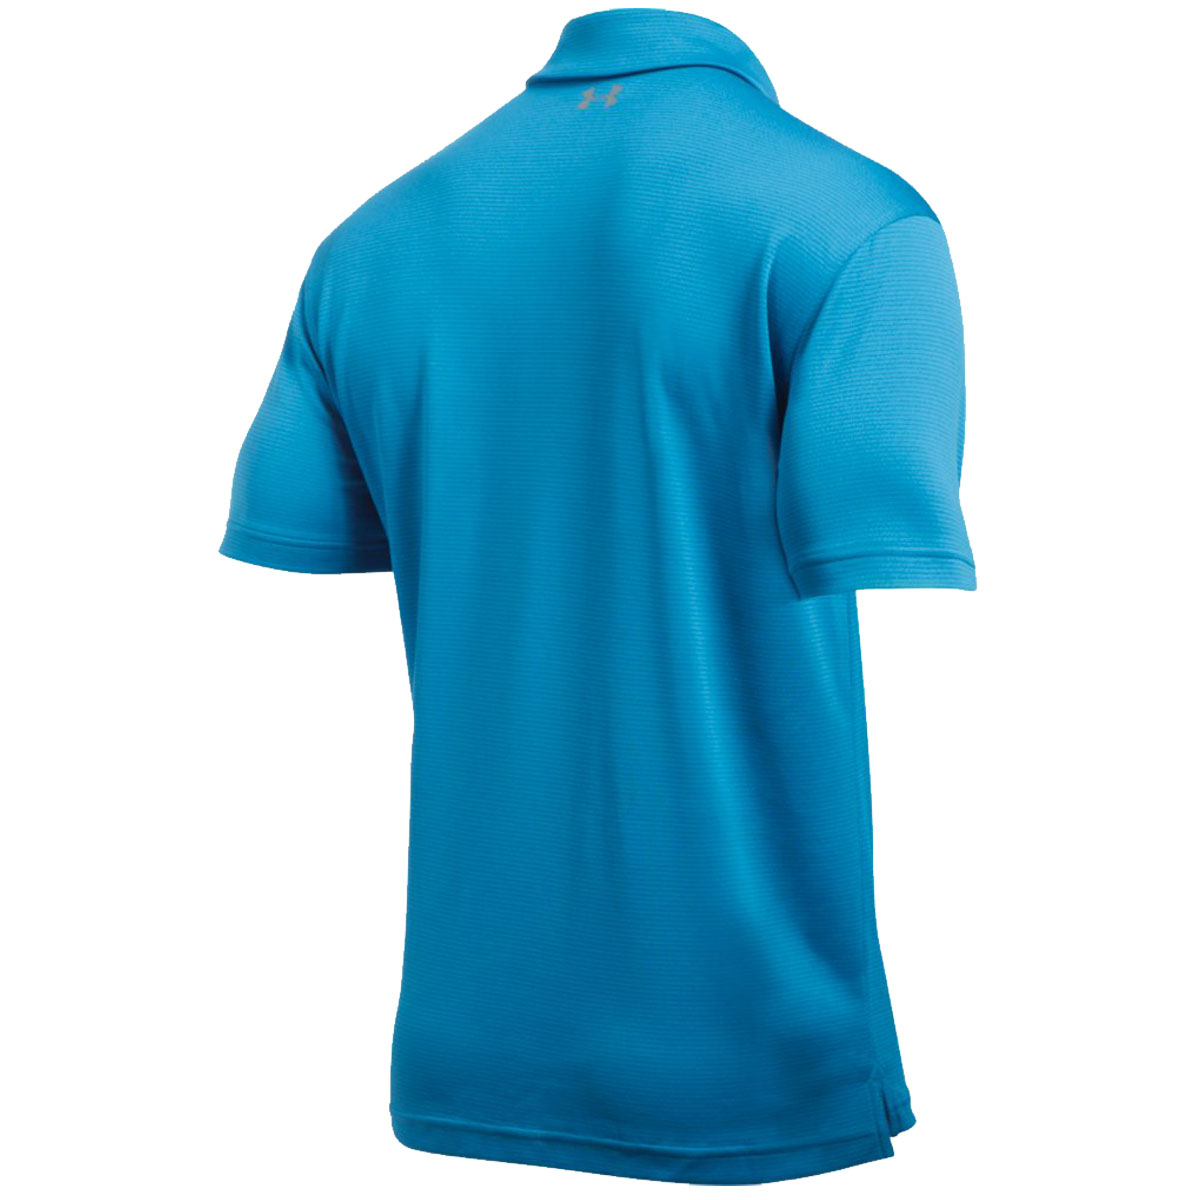 Under-Armour-Mens-Golf-Tech-Wicking-Textured-Soft-Light-Polo-Shirt thumbnail 13